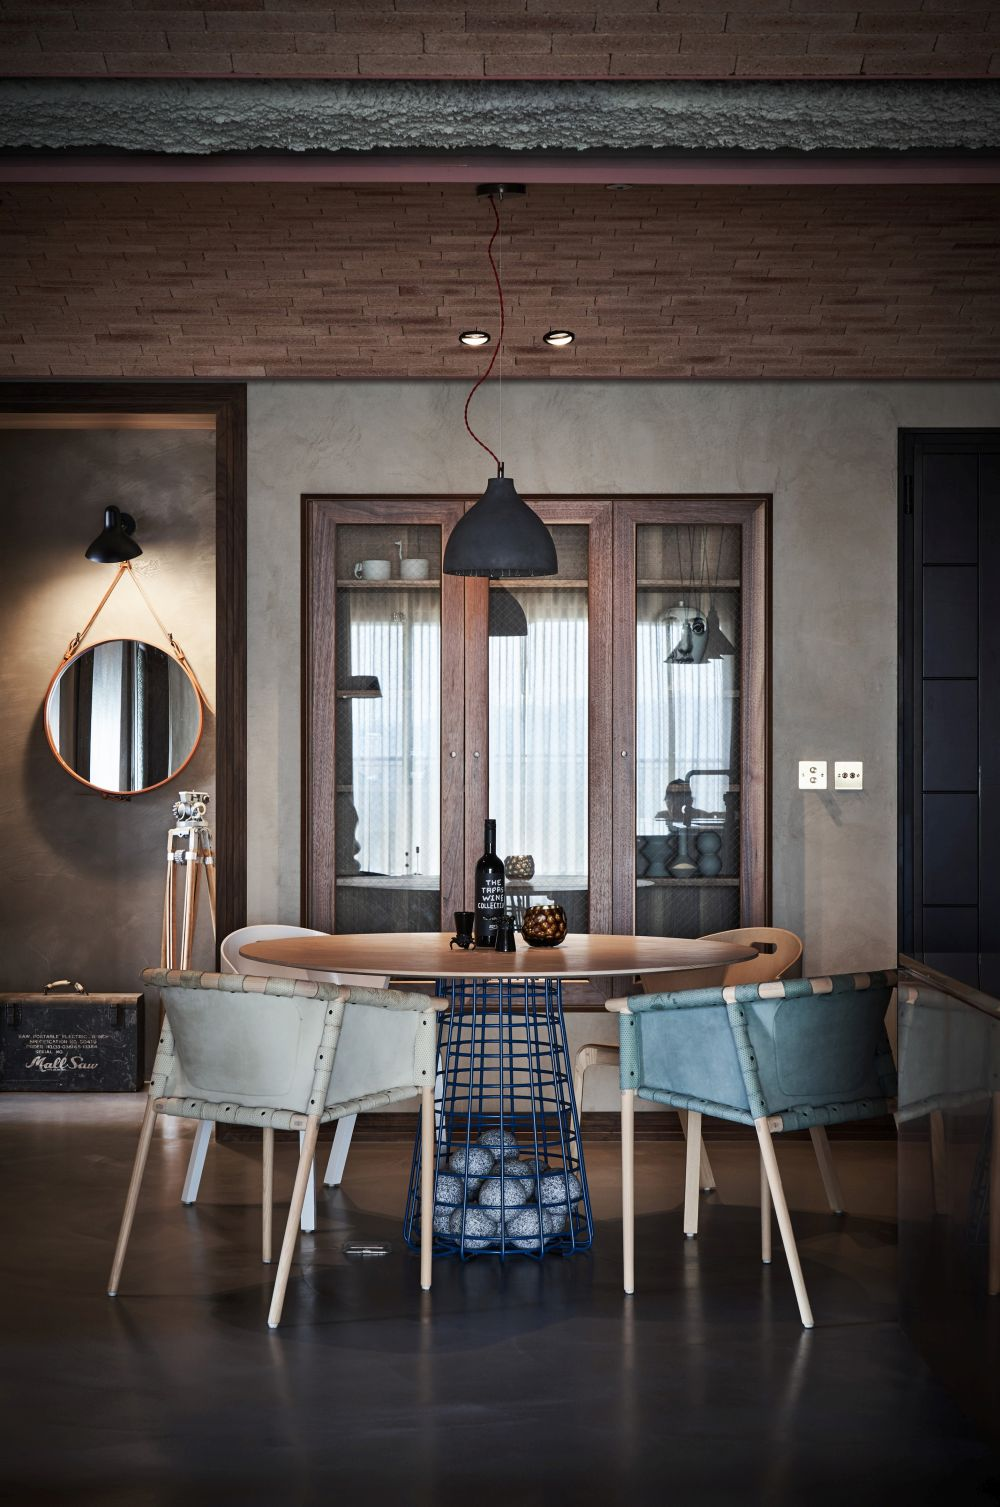 The dining area is small and cozy, centered around a round table next to a display cabinet with glass door fronts